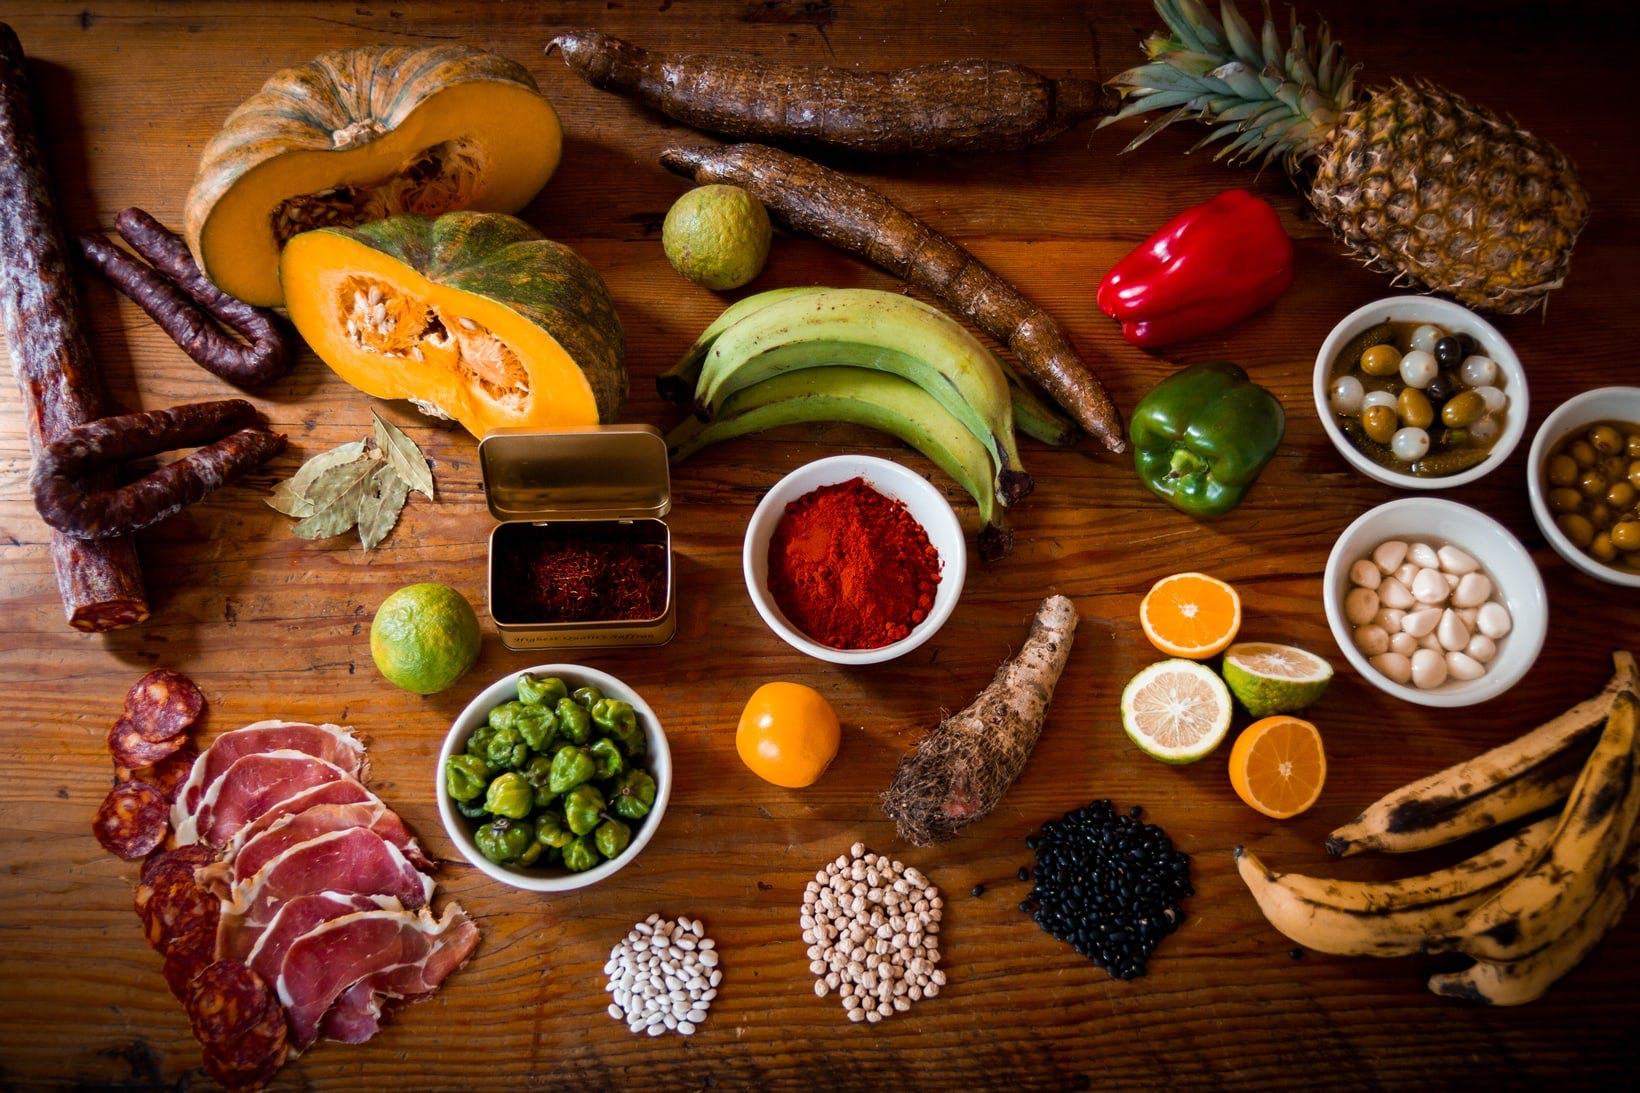 a wooden table topped with different types of food